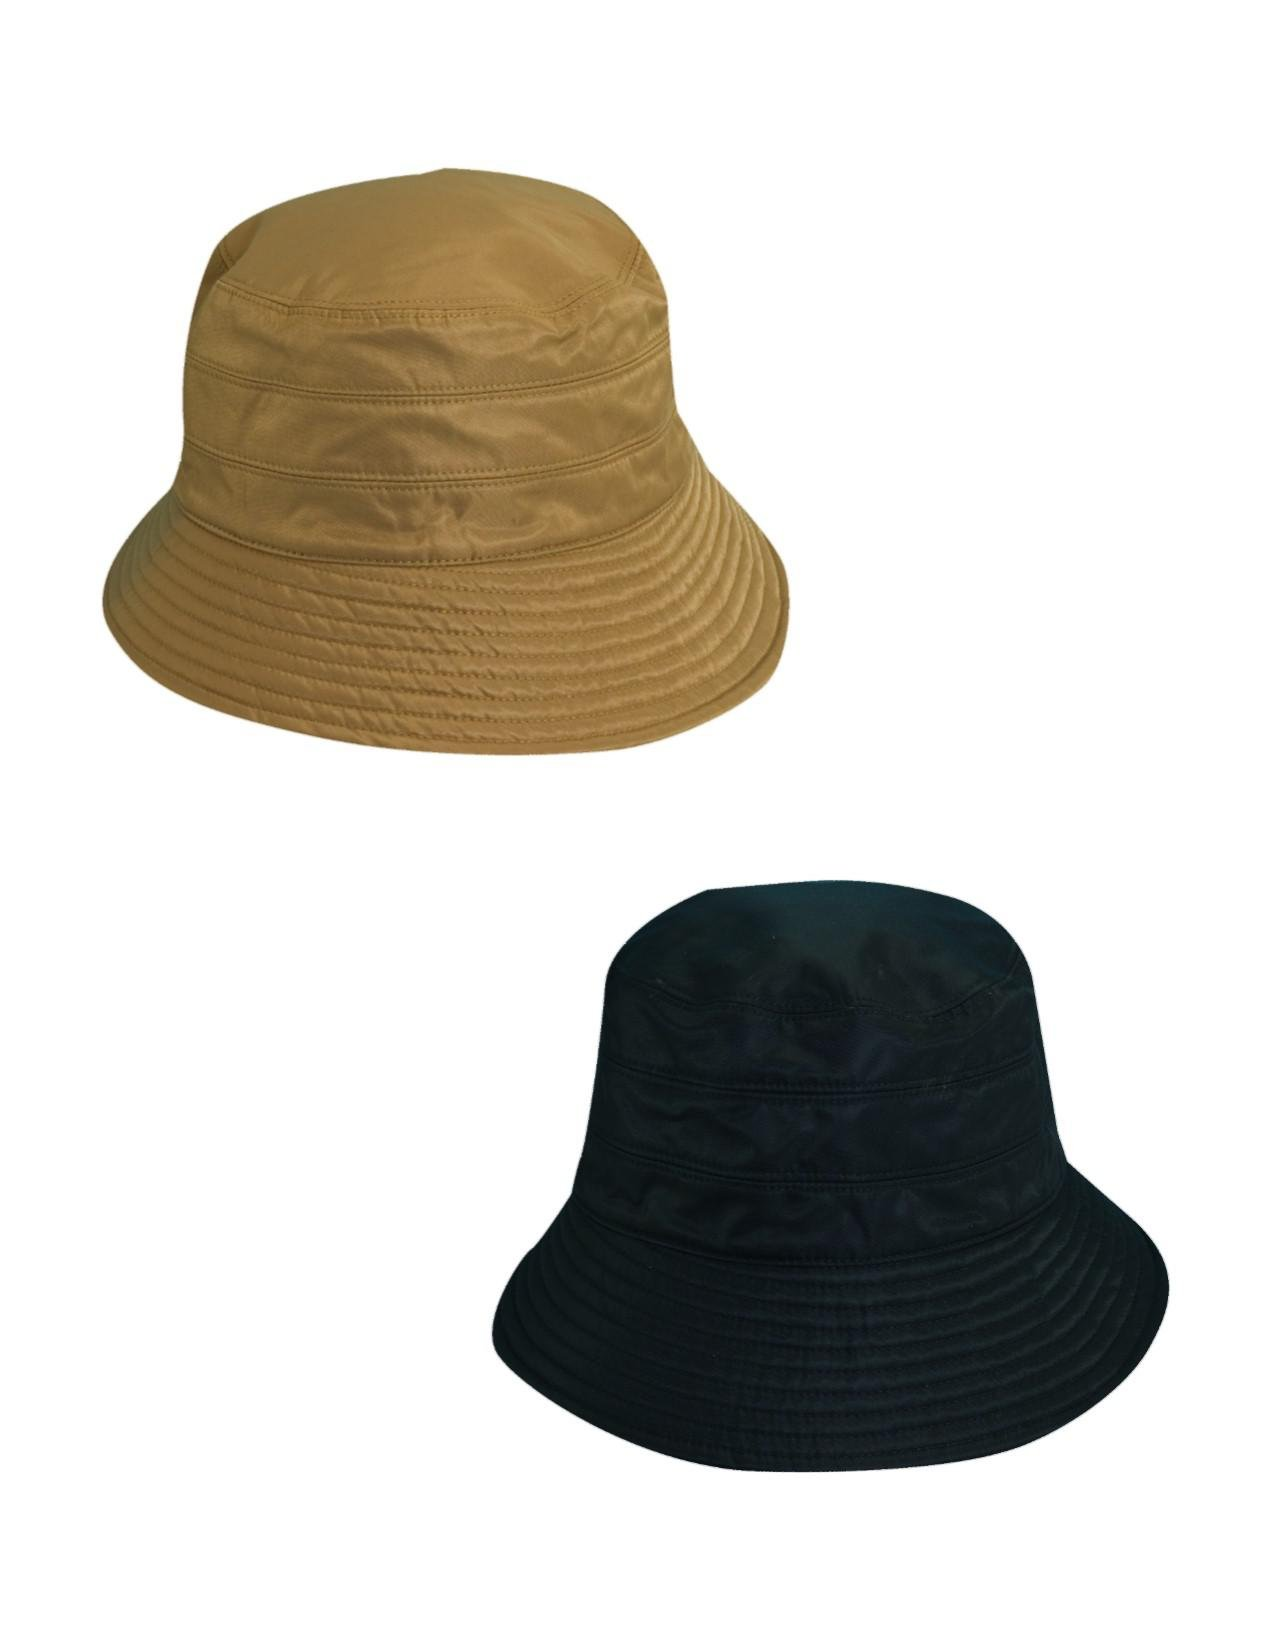 Scala Classico Women's Tapered Water Repellent Rain Hat (Pack of 2), Khaki/Black by Scala